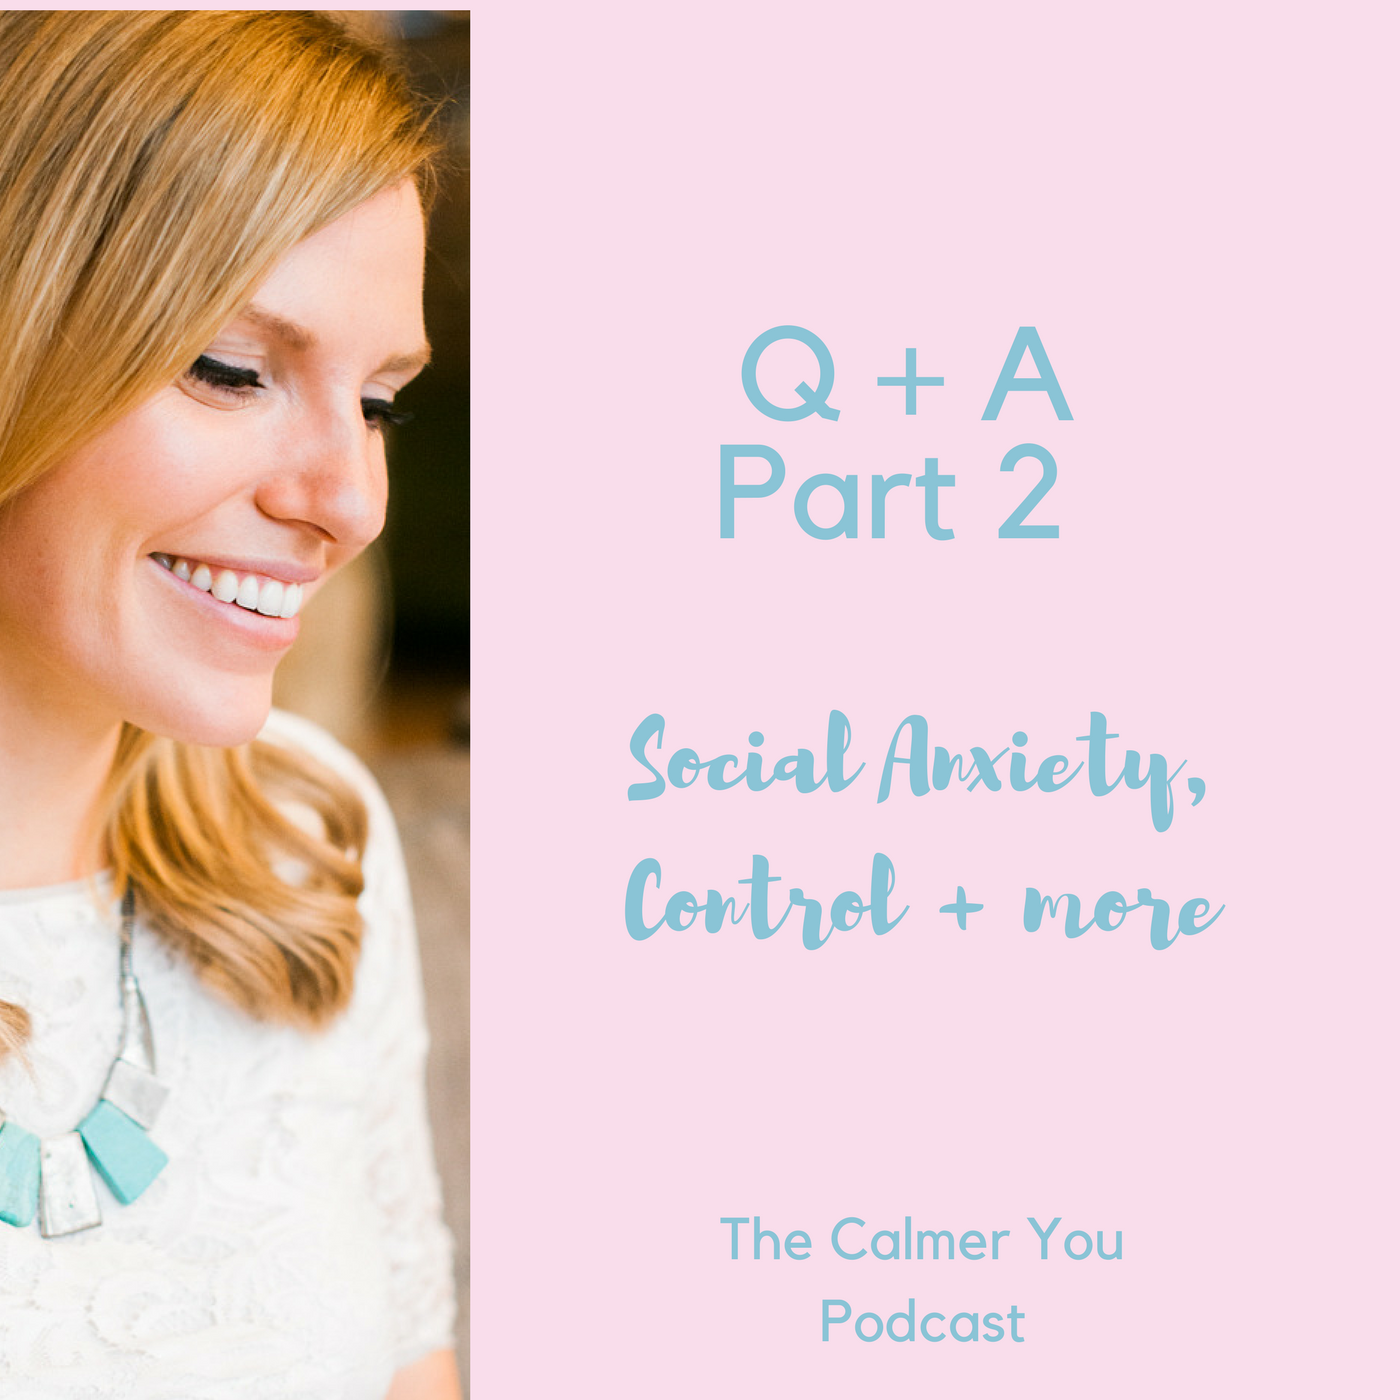 Ep 11. Q + A Part 2 – Social Anxiety, Books, Losing Control